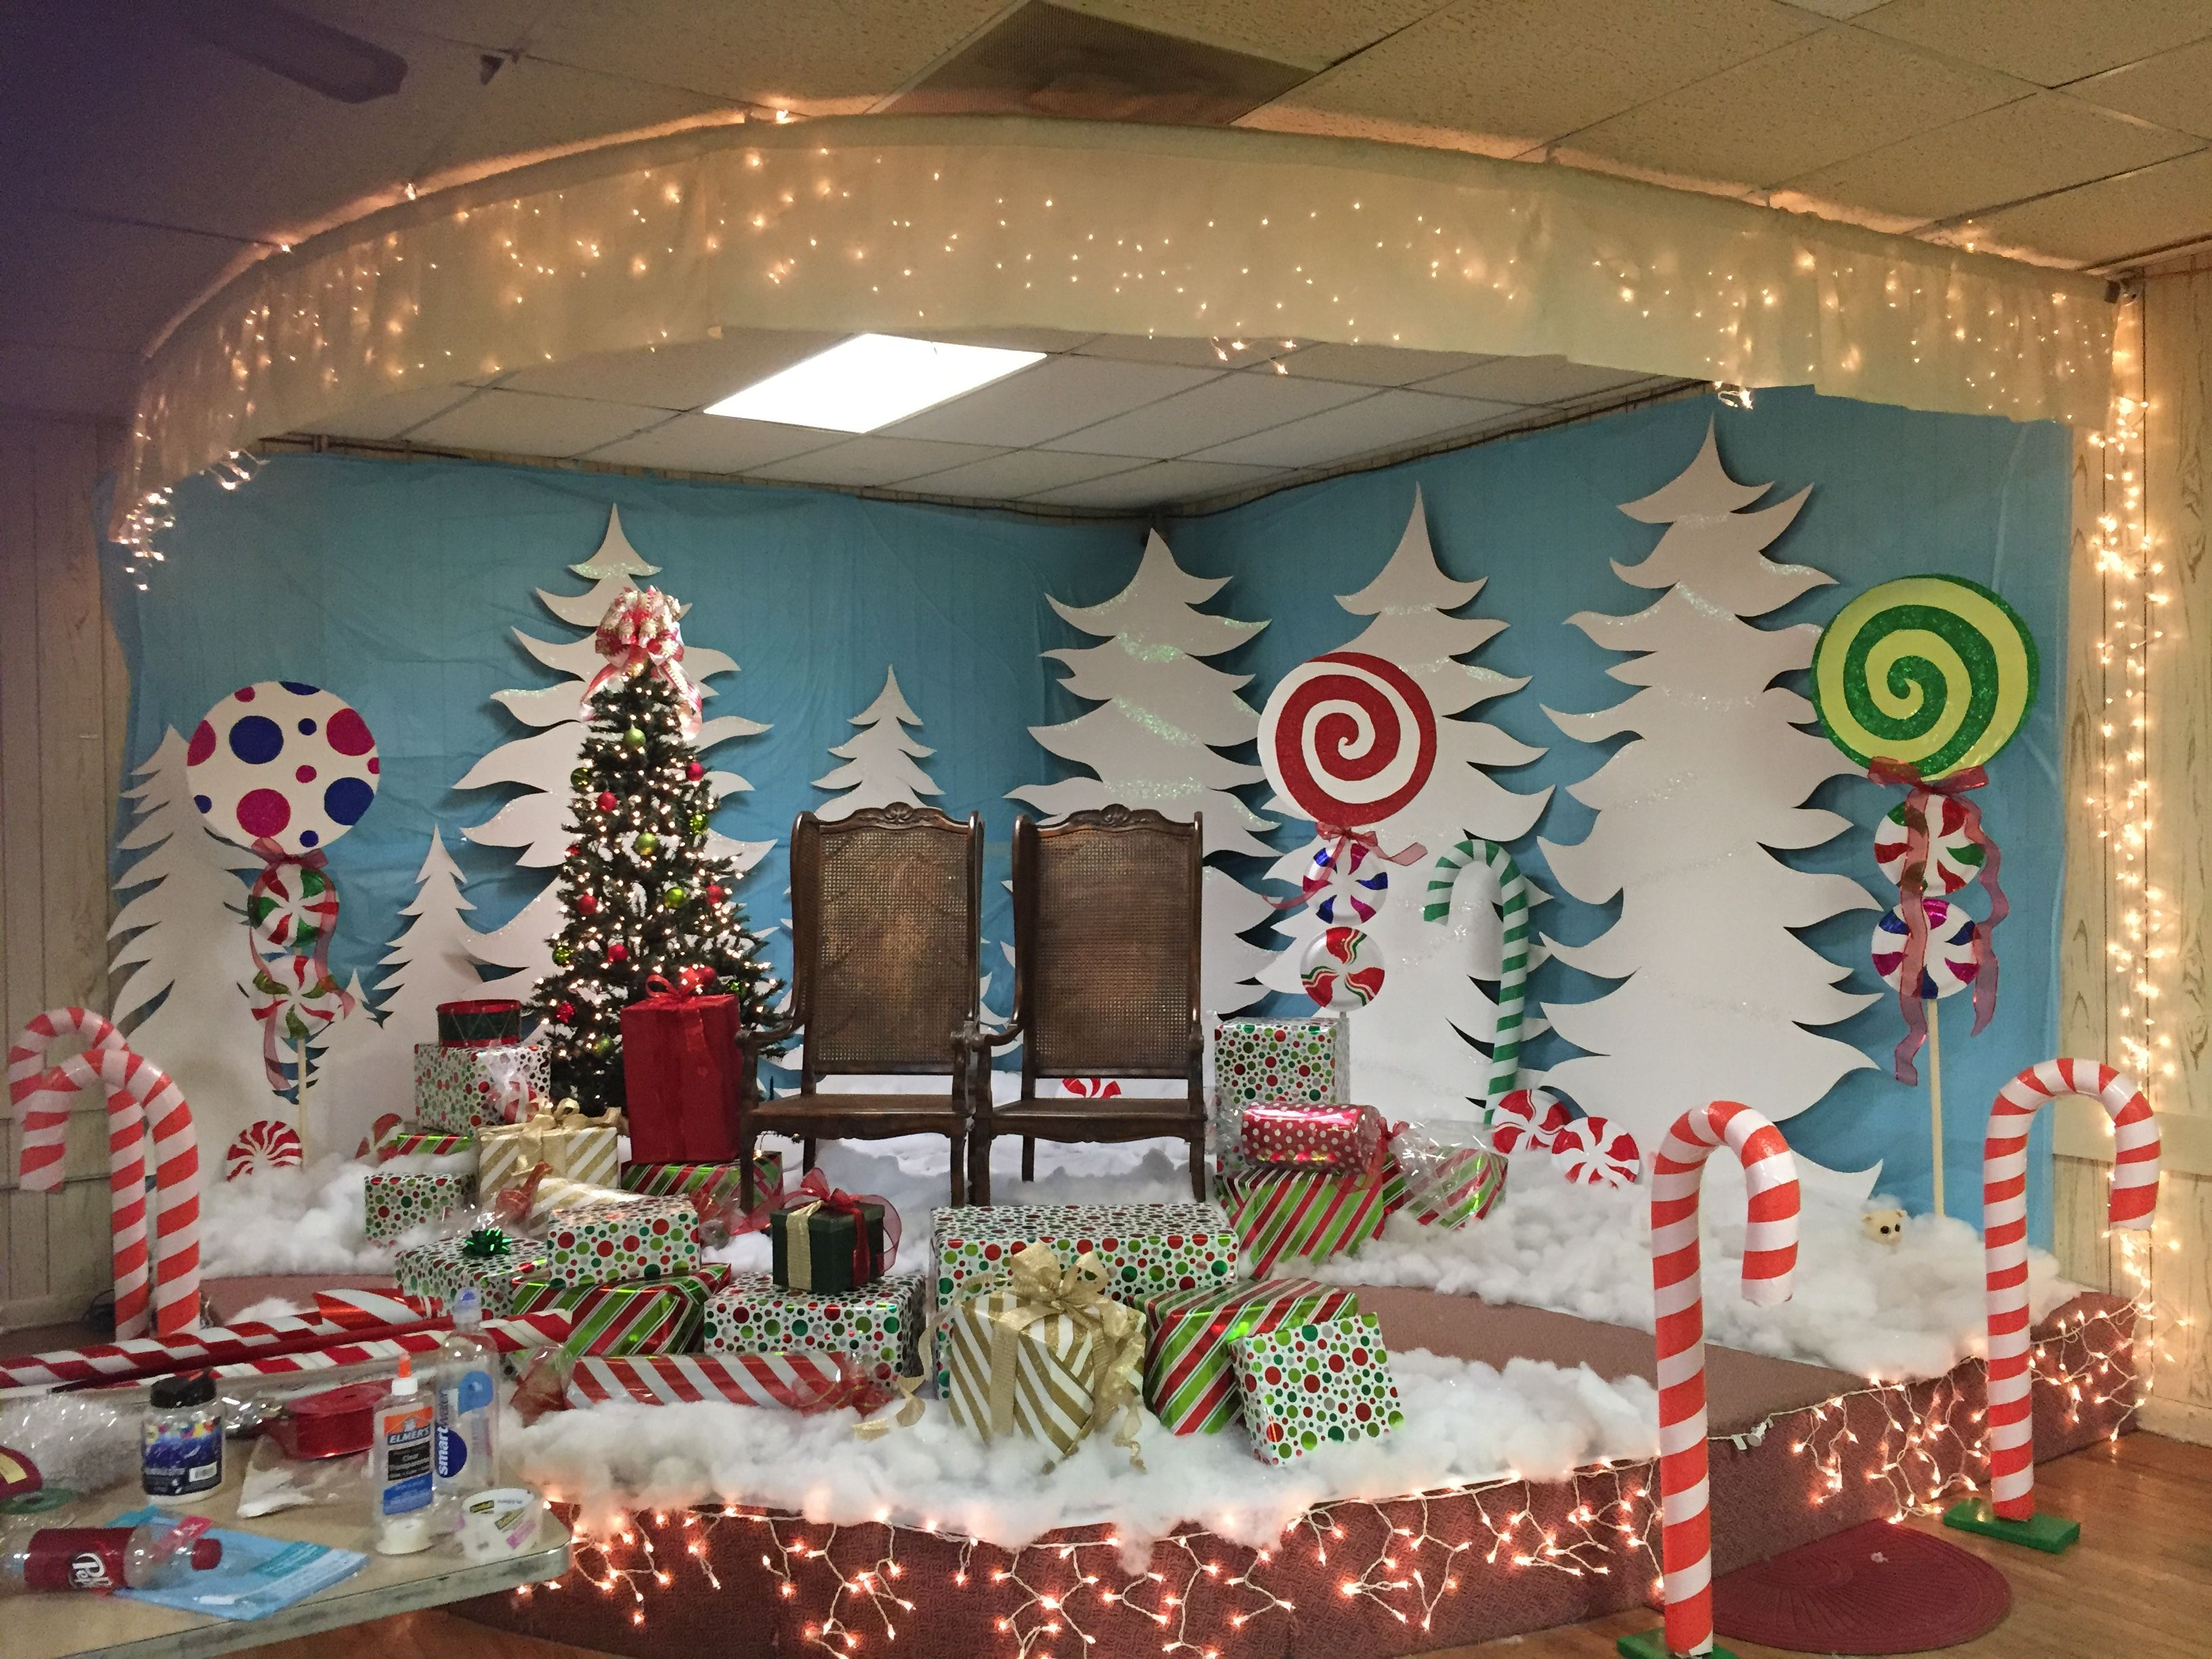 Our Holiday Santa Photo Set For The Local Army Christmas Party So Proud With Images Office Christmas Decorations Christmas Cubicle Decorations Christmas Door Decorations